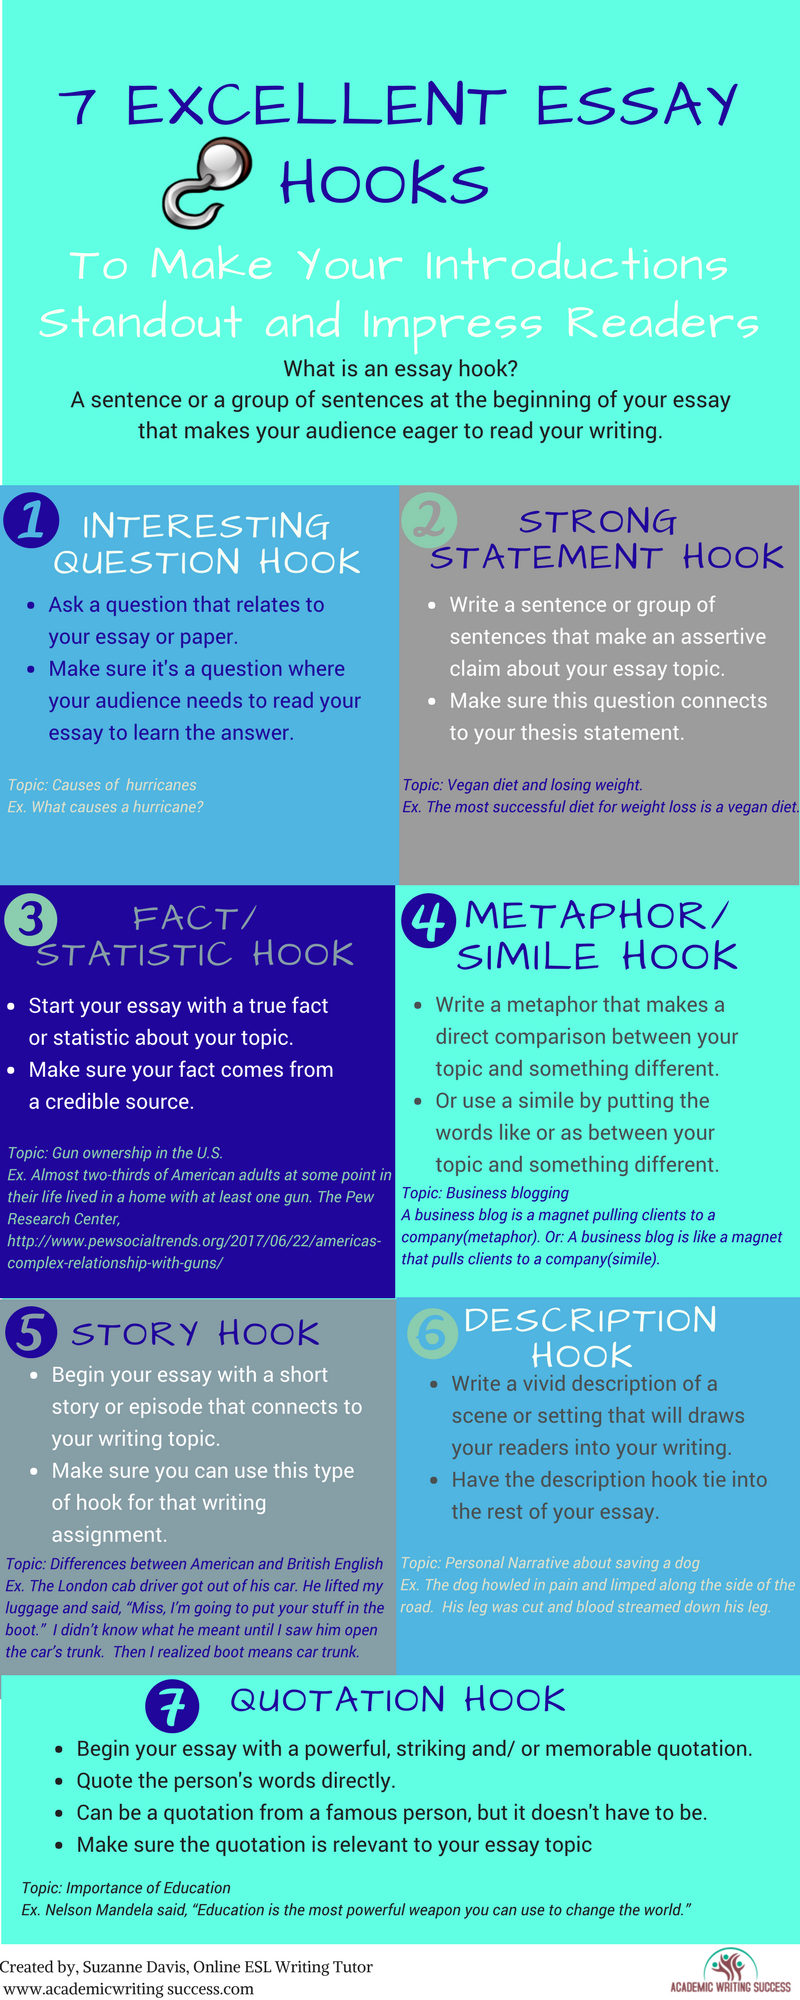 Learn 7 Excellent Type Of Essay Hook Use Them In Your Academic Writing And Paper For More Acade Skill College About Online Learning Experience